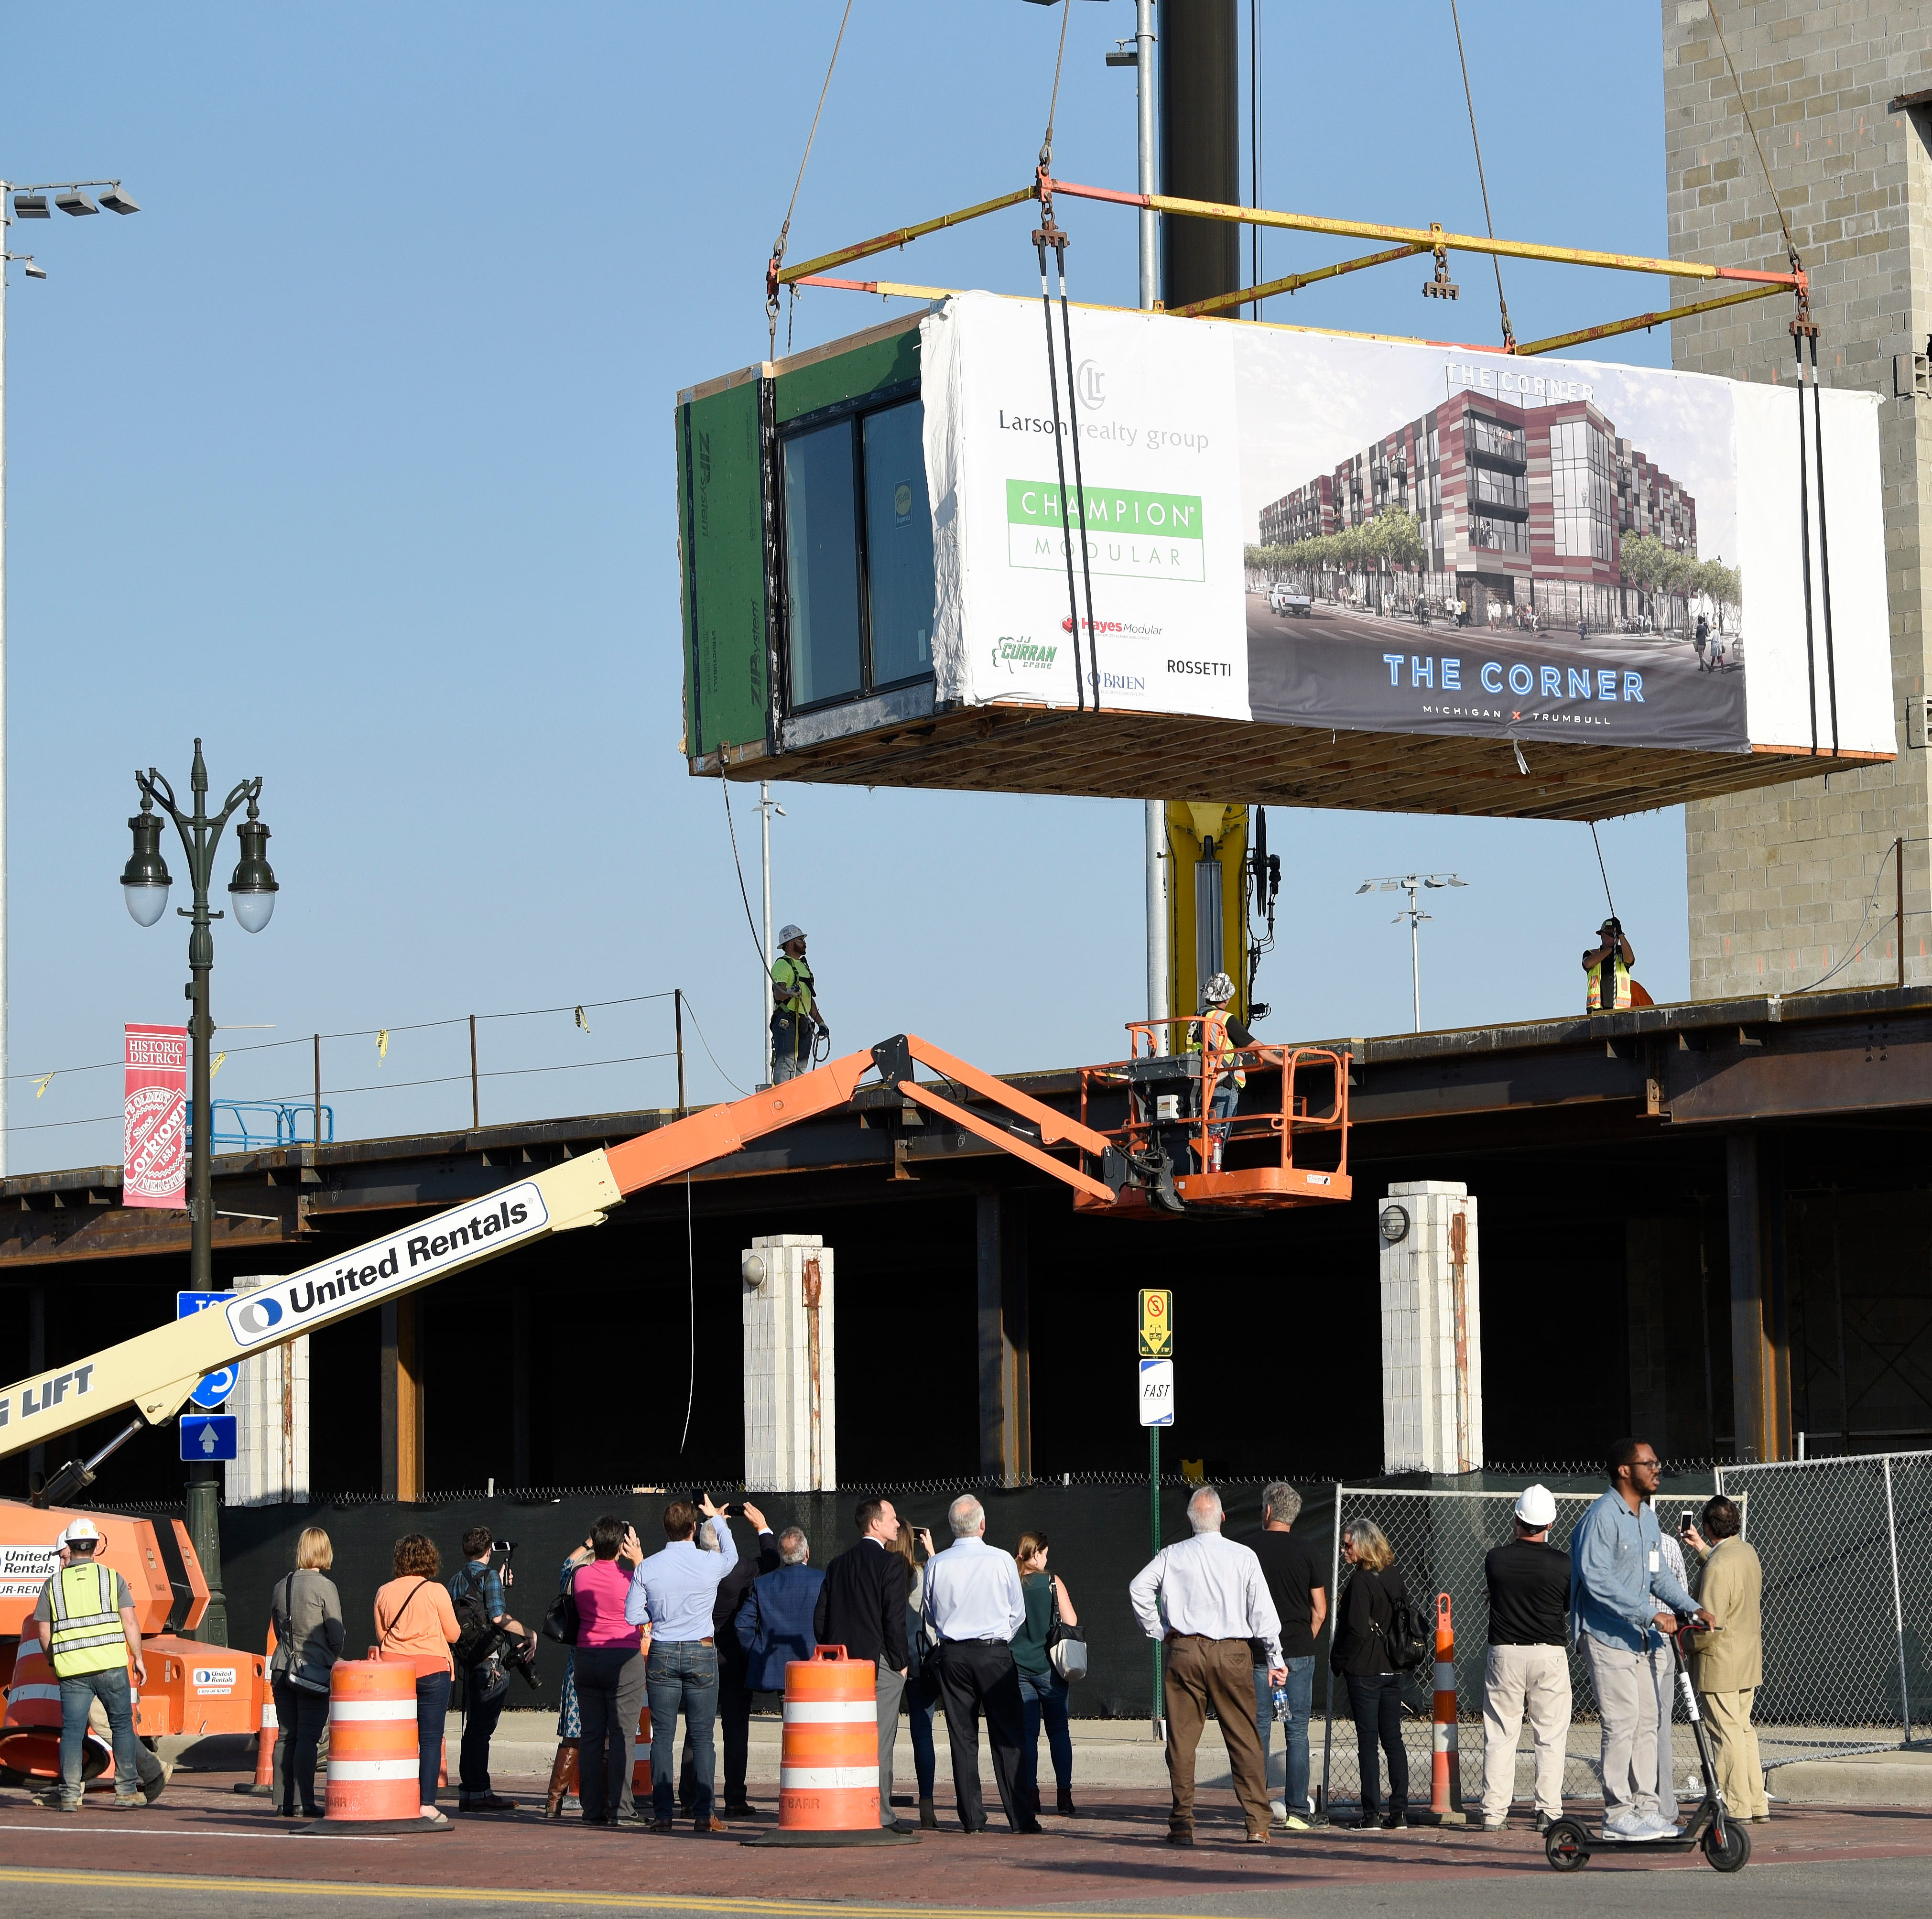 A crowd watches as a modular apartement unit is installed on the first floor podium of the 'Corner' a $30 million mixed-use development project at the corner of Michigan Ave. and Trumbull St on the former Tiger Stadium site in Detroit on Tuesday, September 18, 2018.